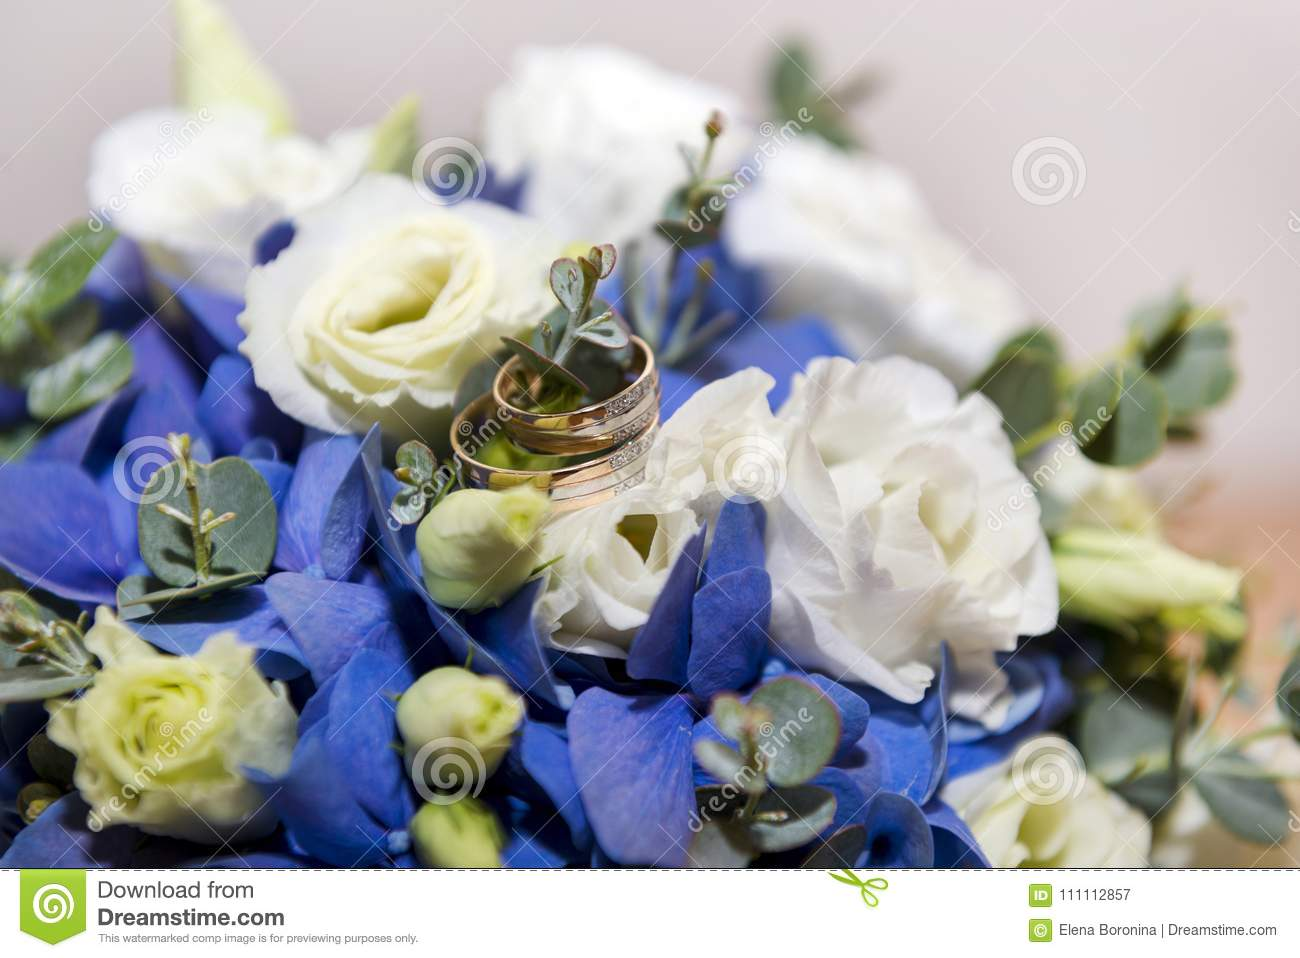 Gold Wedding Rings On A Bouquet Of White And Blue Flowers Stock